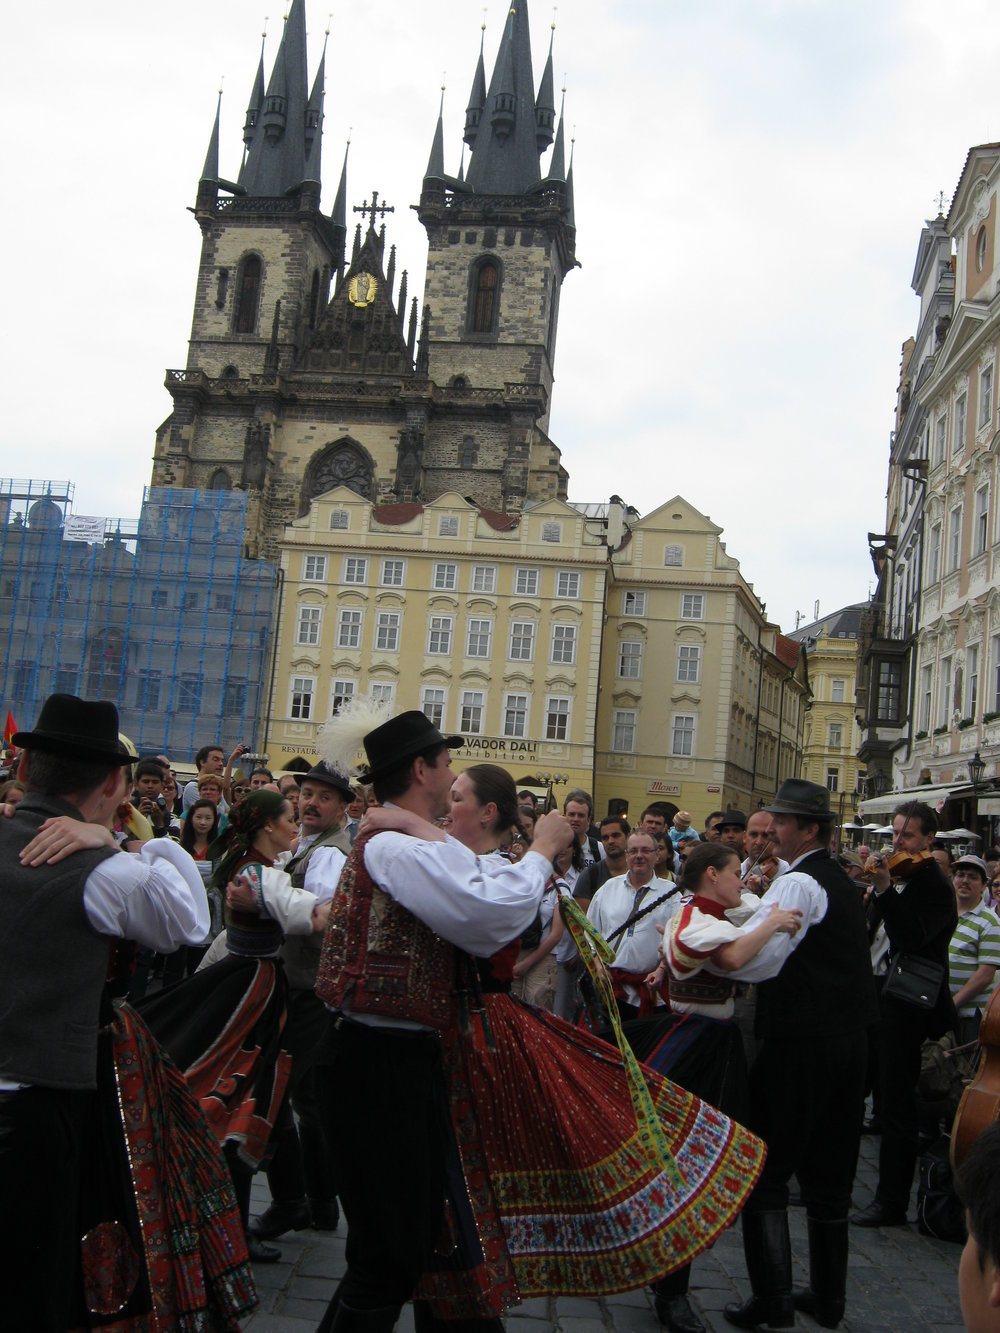 CzechRepublic_Prague_dancers at a festival in old town square.JPG